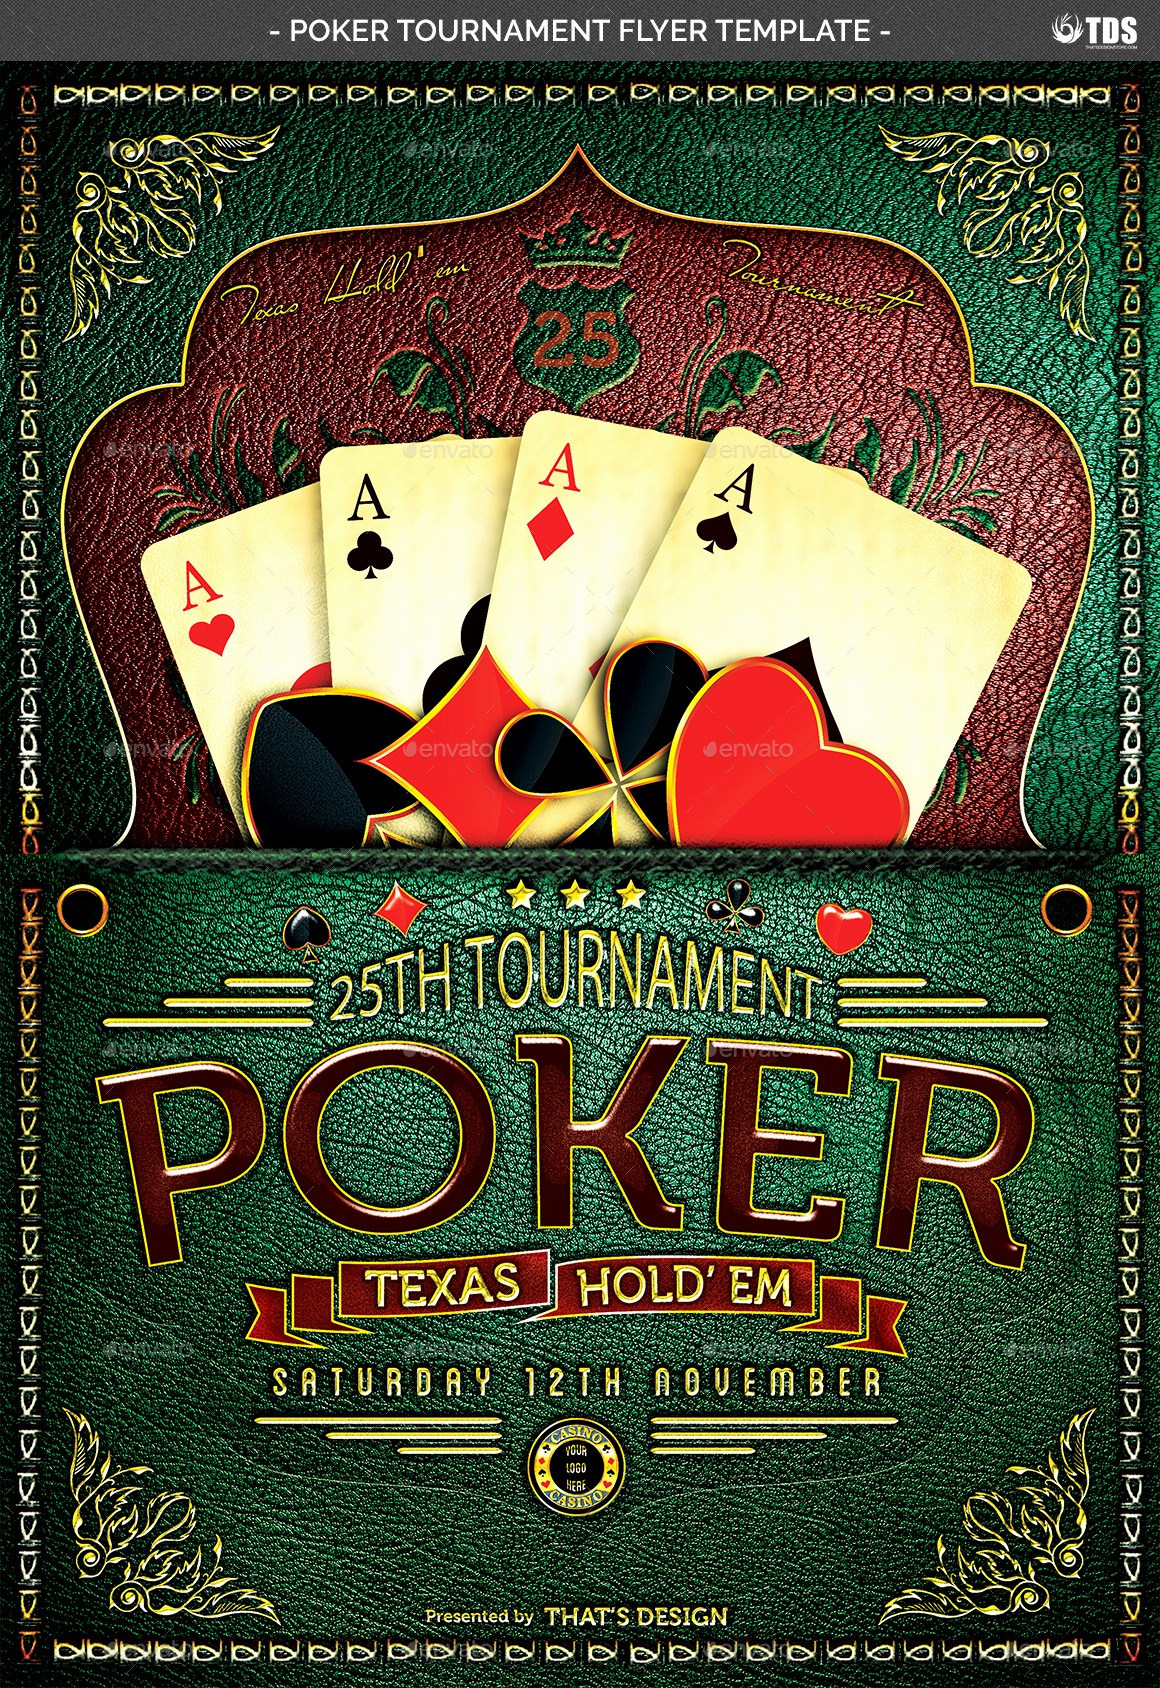 Softball tournament Flyer Template Free Best Of Poker tournament Flyer Template by Lou606